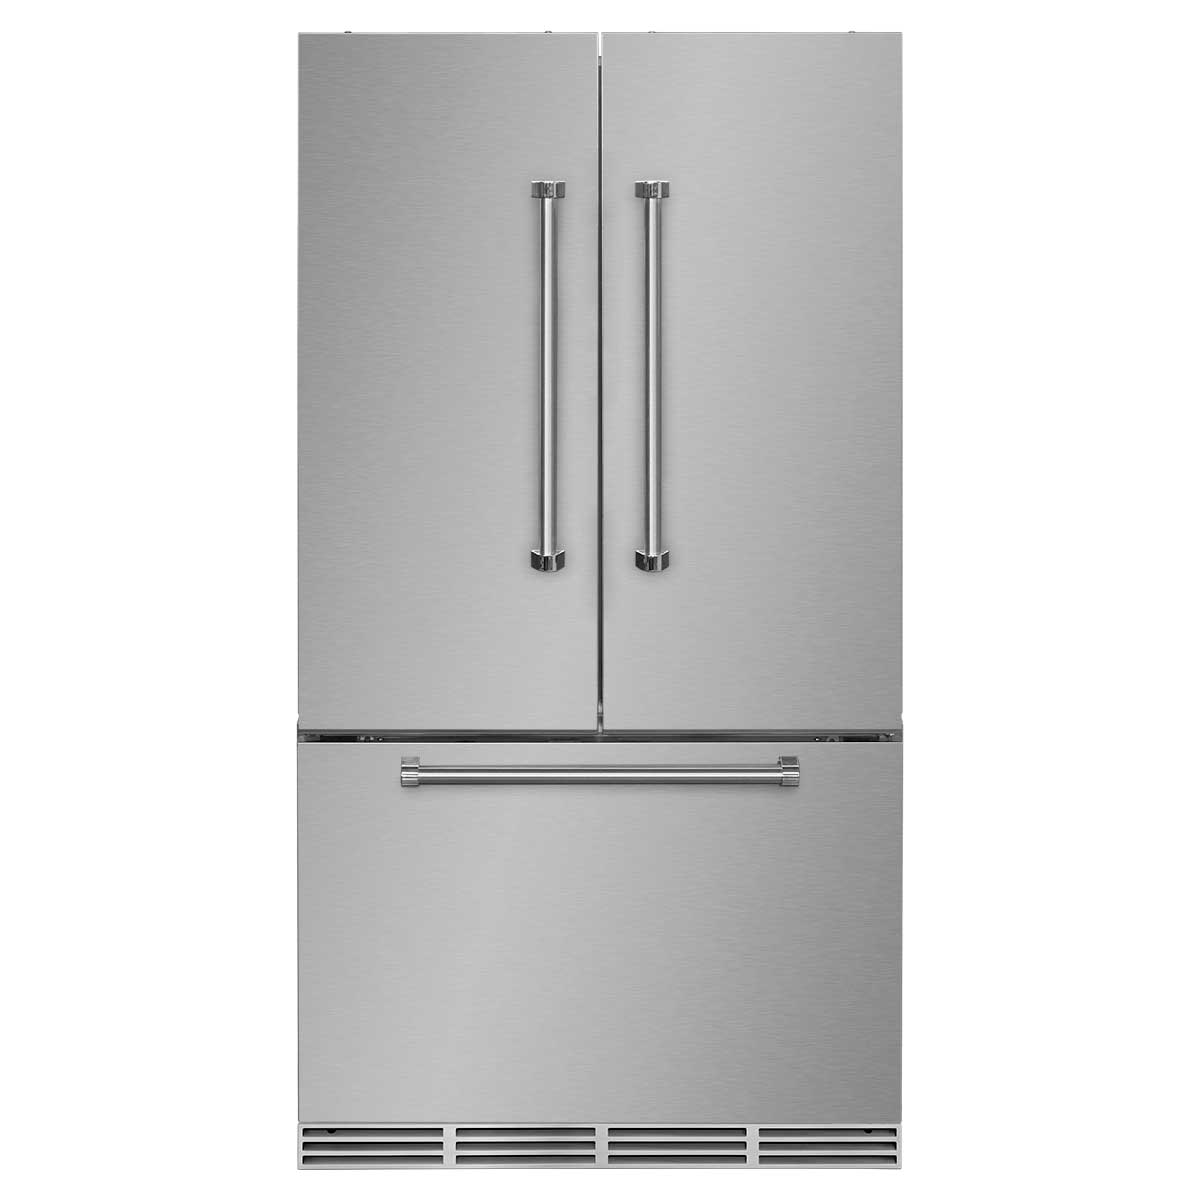 "Marvel  Marvel Professional 36"" French Door Refrigerator with Bottom Freezer- 36? French Door Refrigerator with Bottom Freezer"